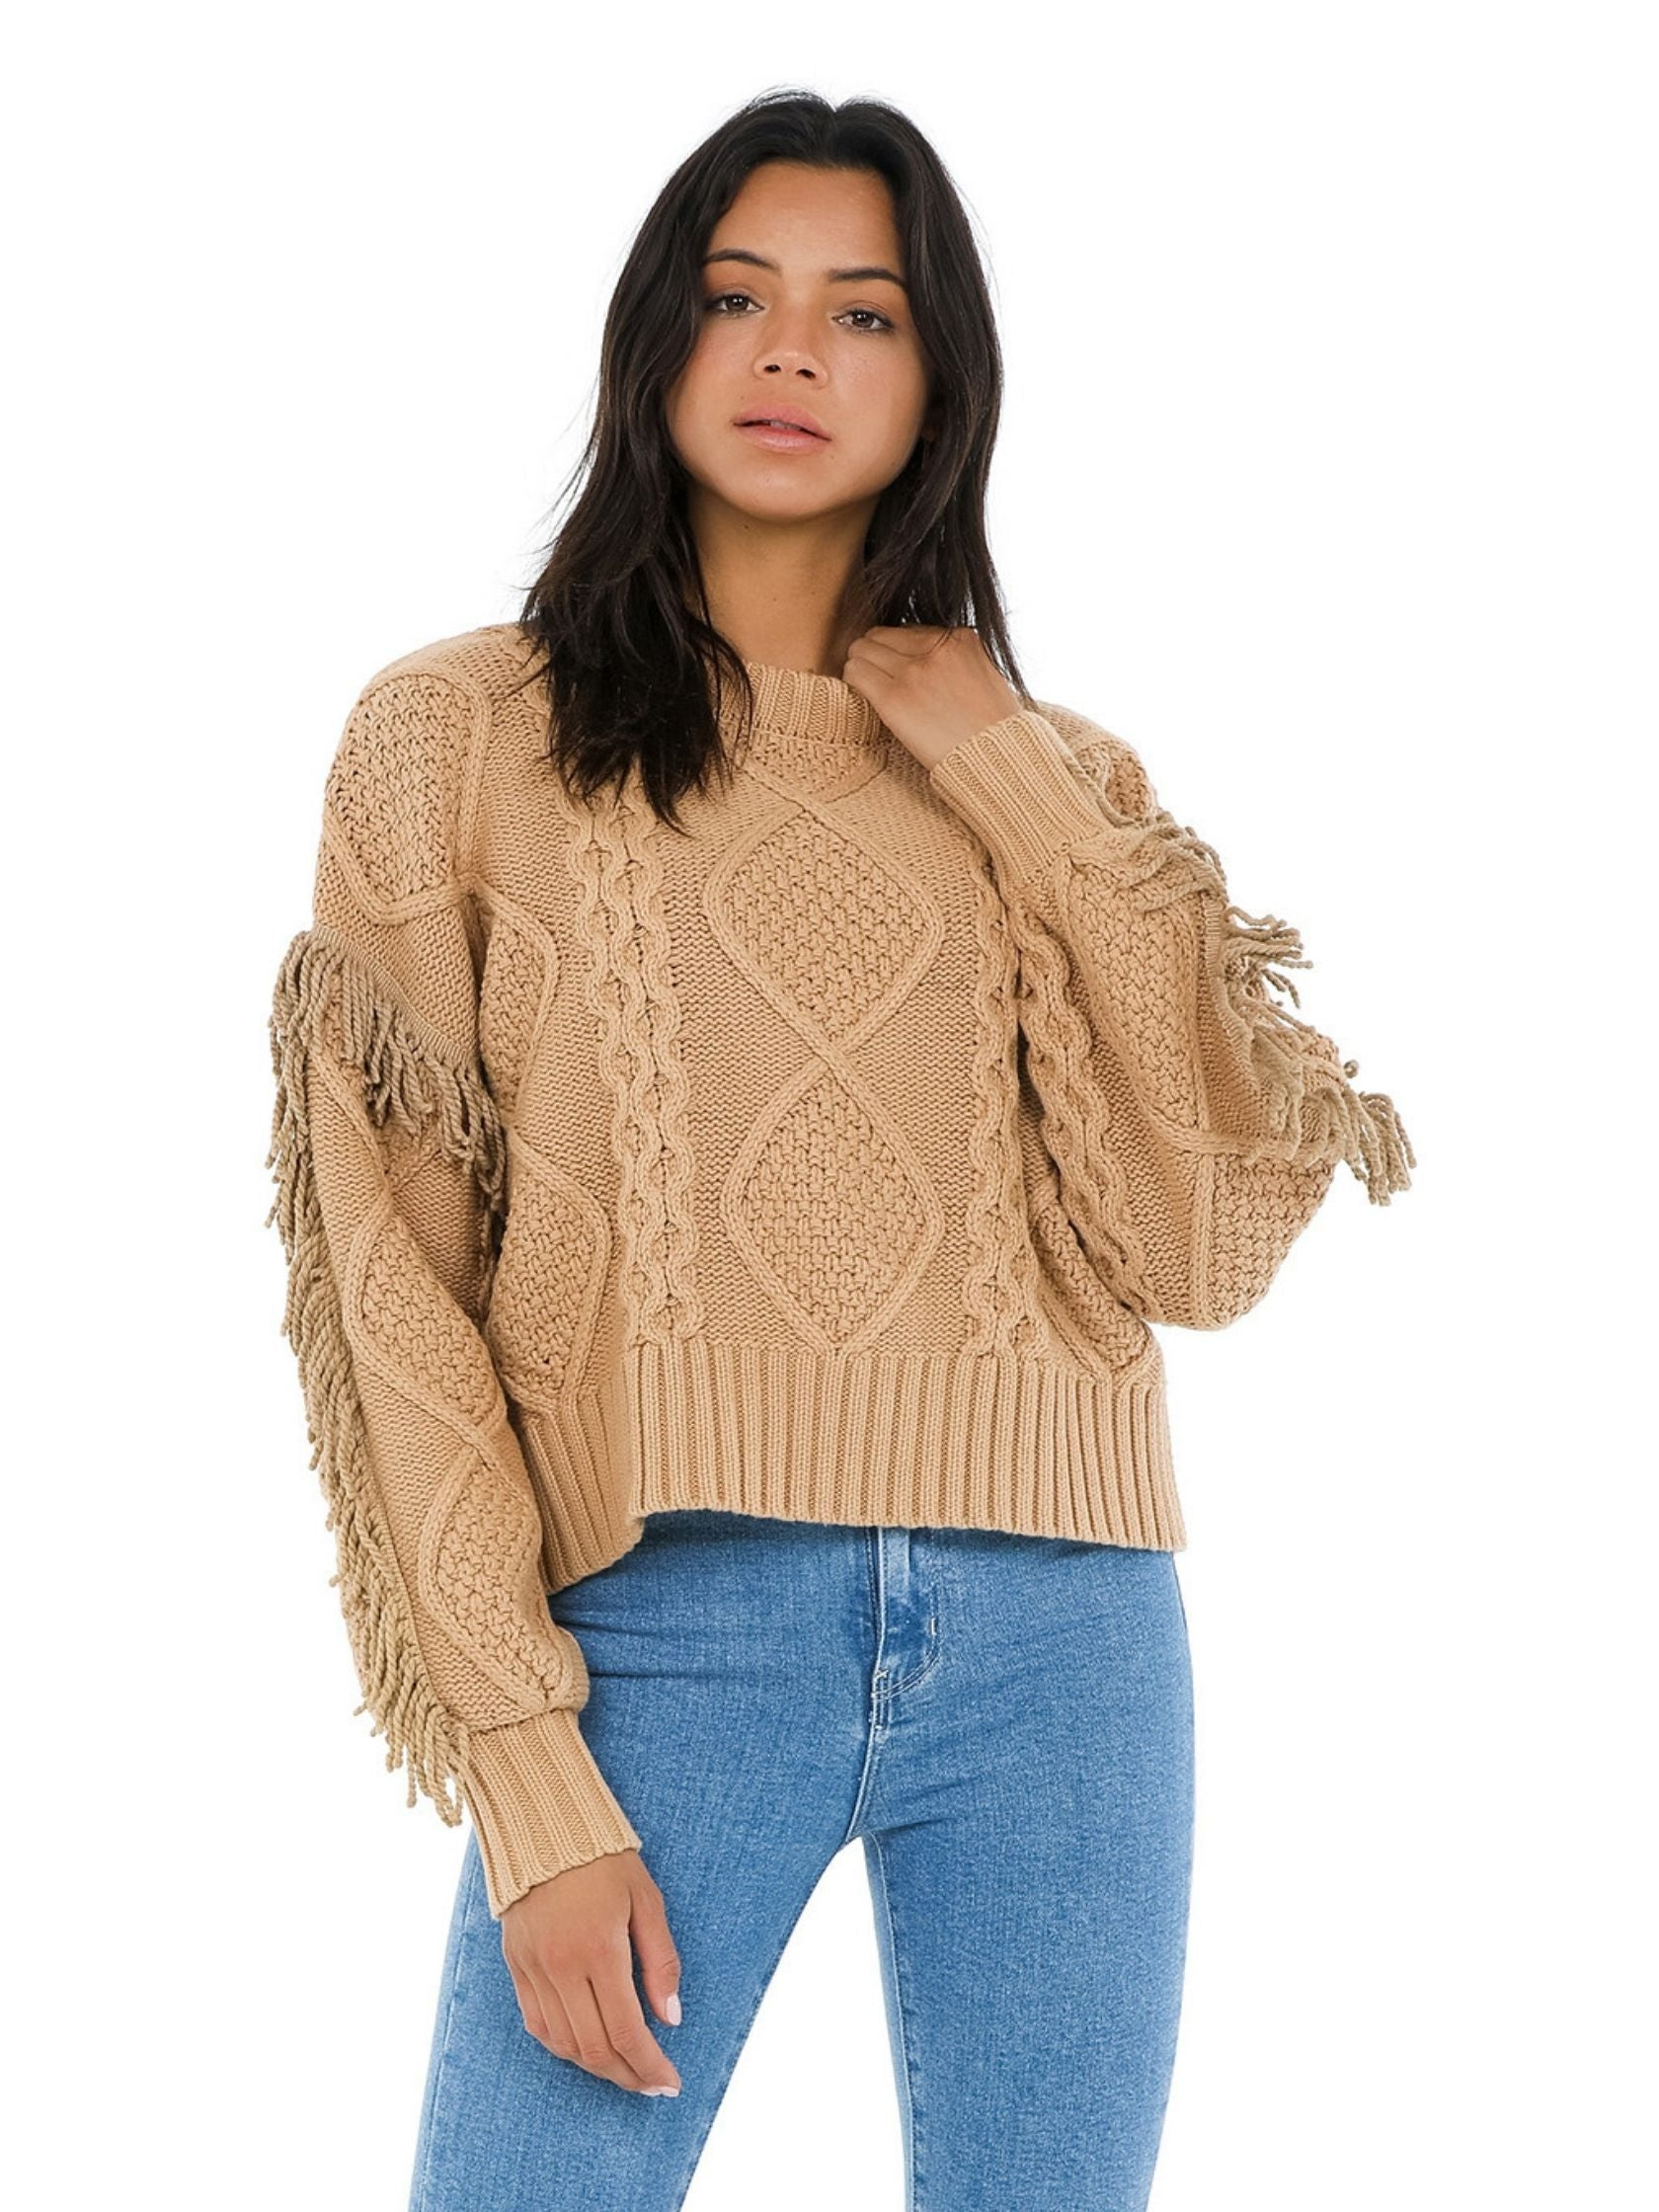 Woman wearing a sweater rental from Line & Dot called Jasper Fringe Sweater